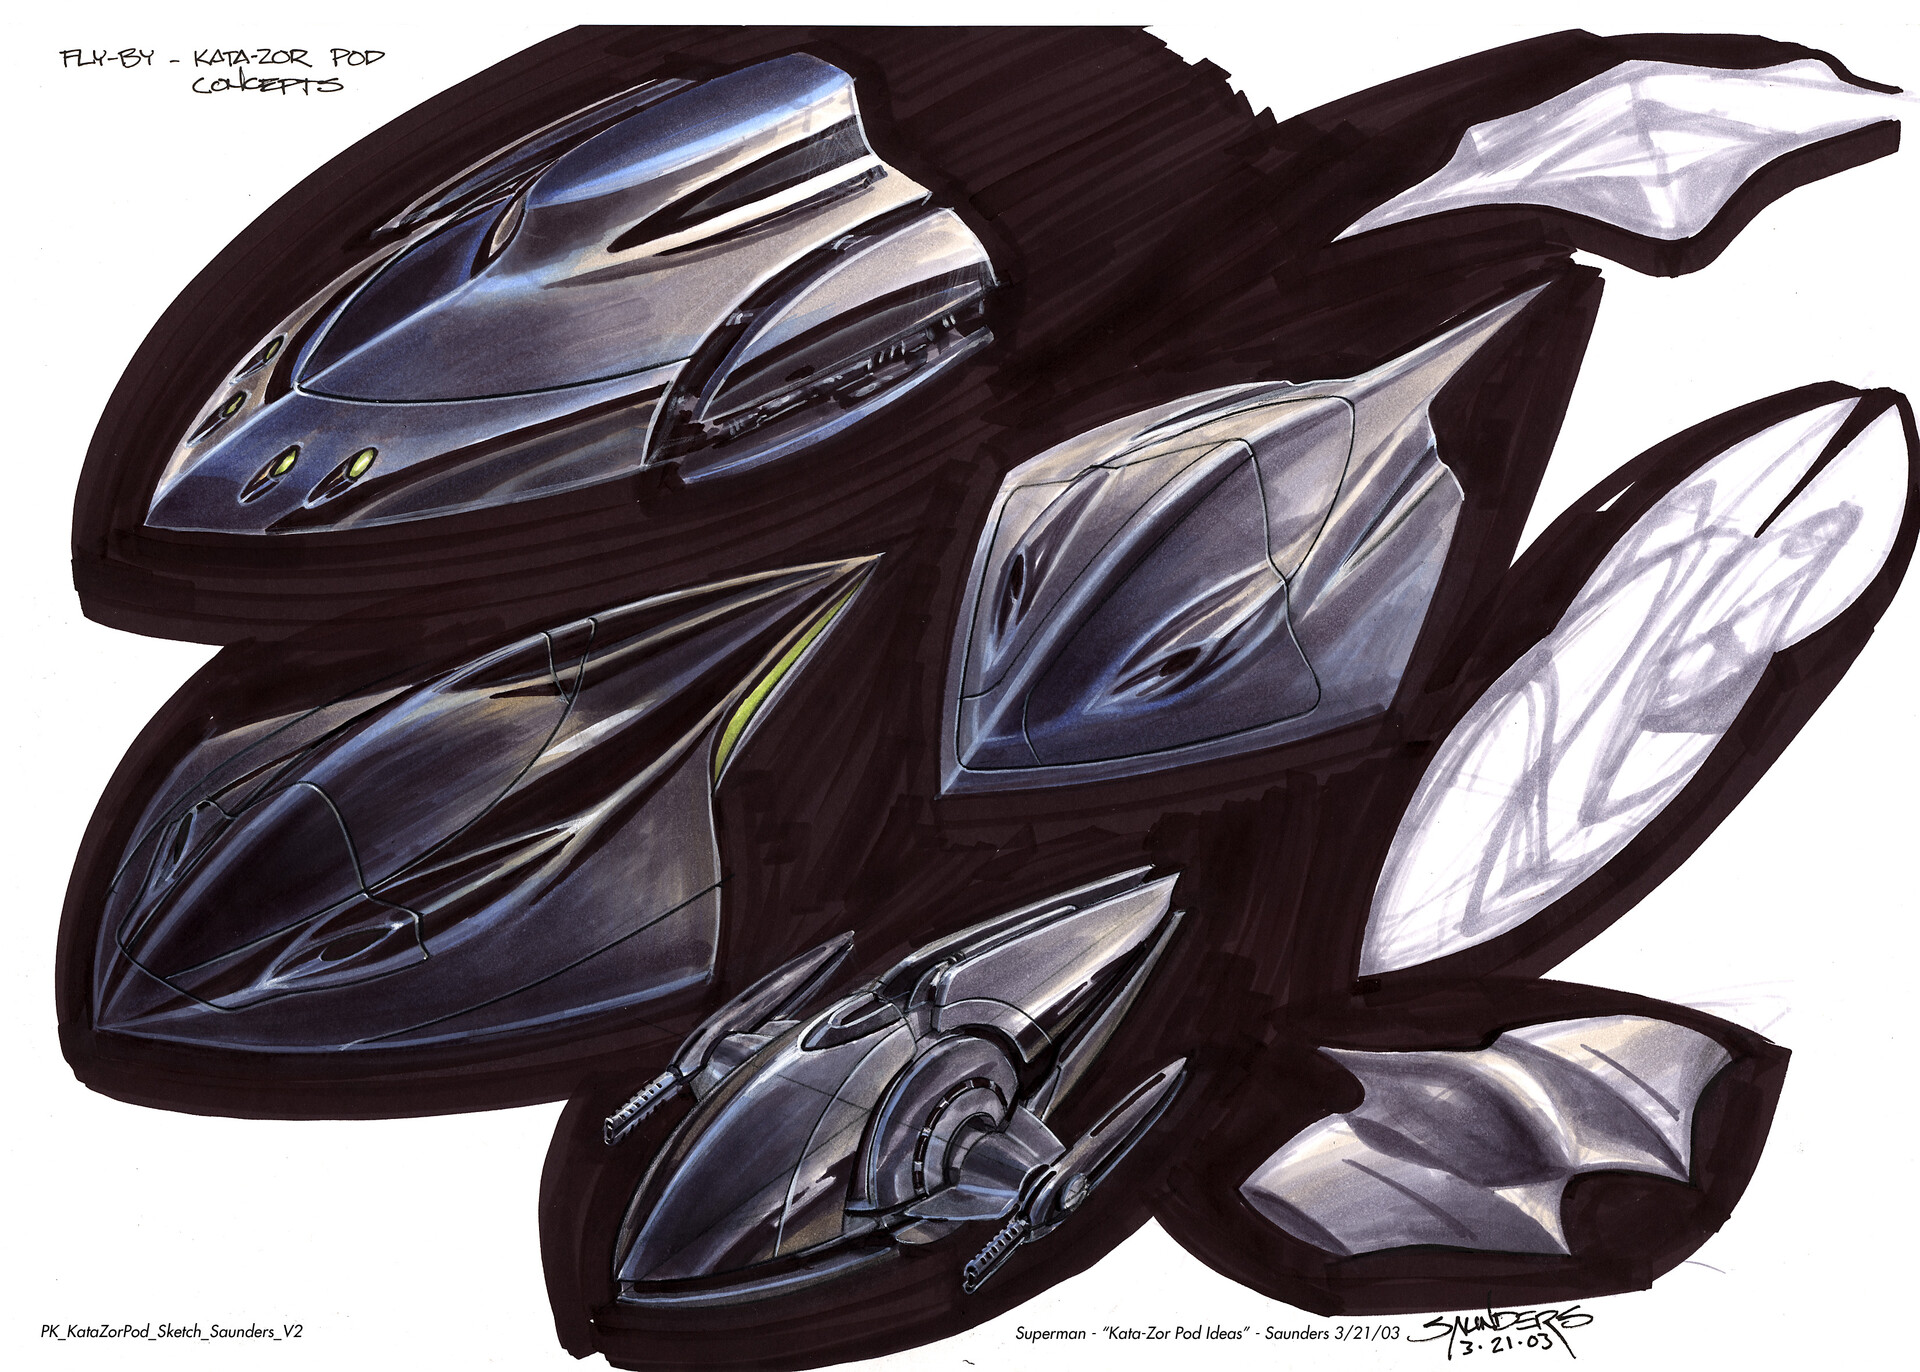 More initial concepts. These were still considered too similar to Superman's pod, so a new aesthetic direction was needed.